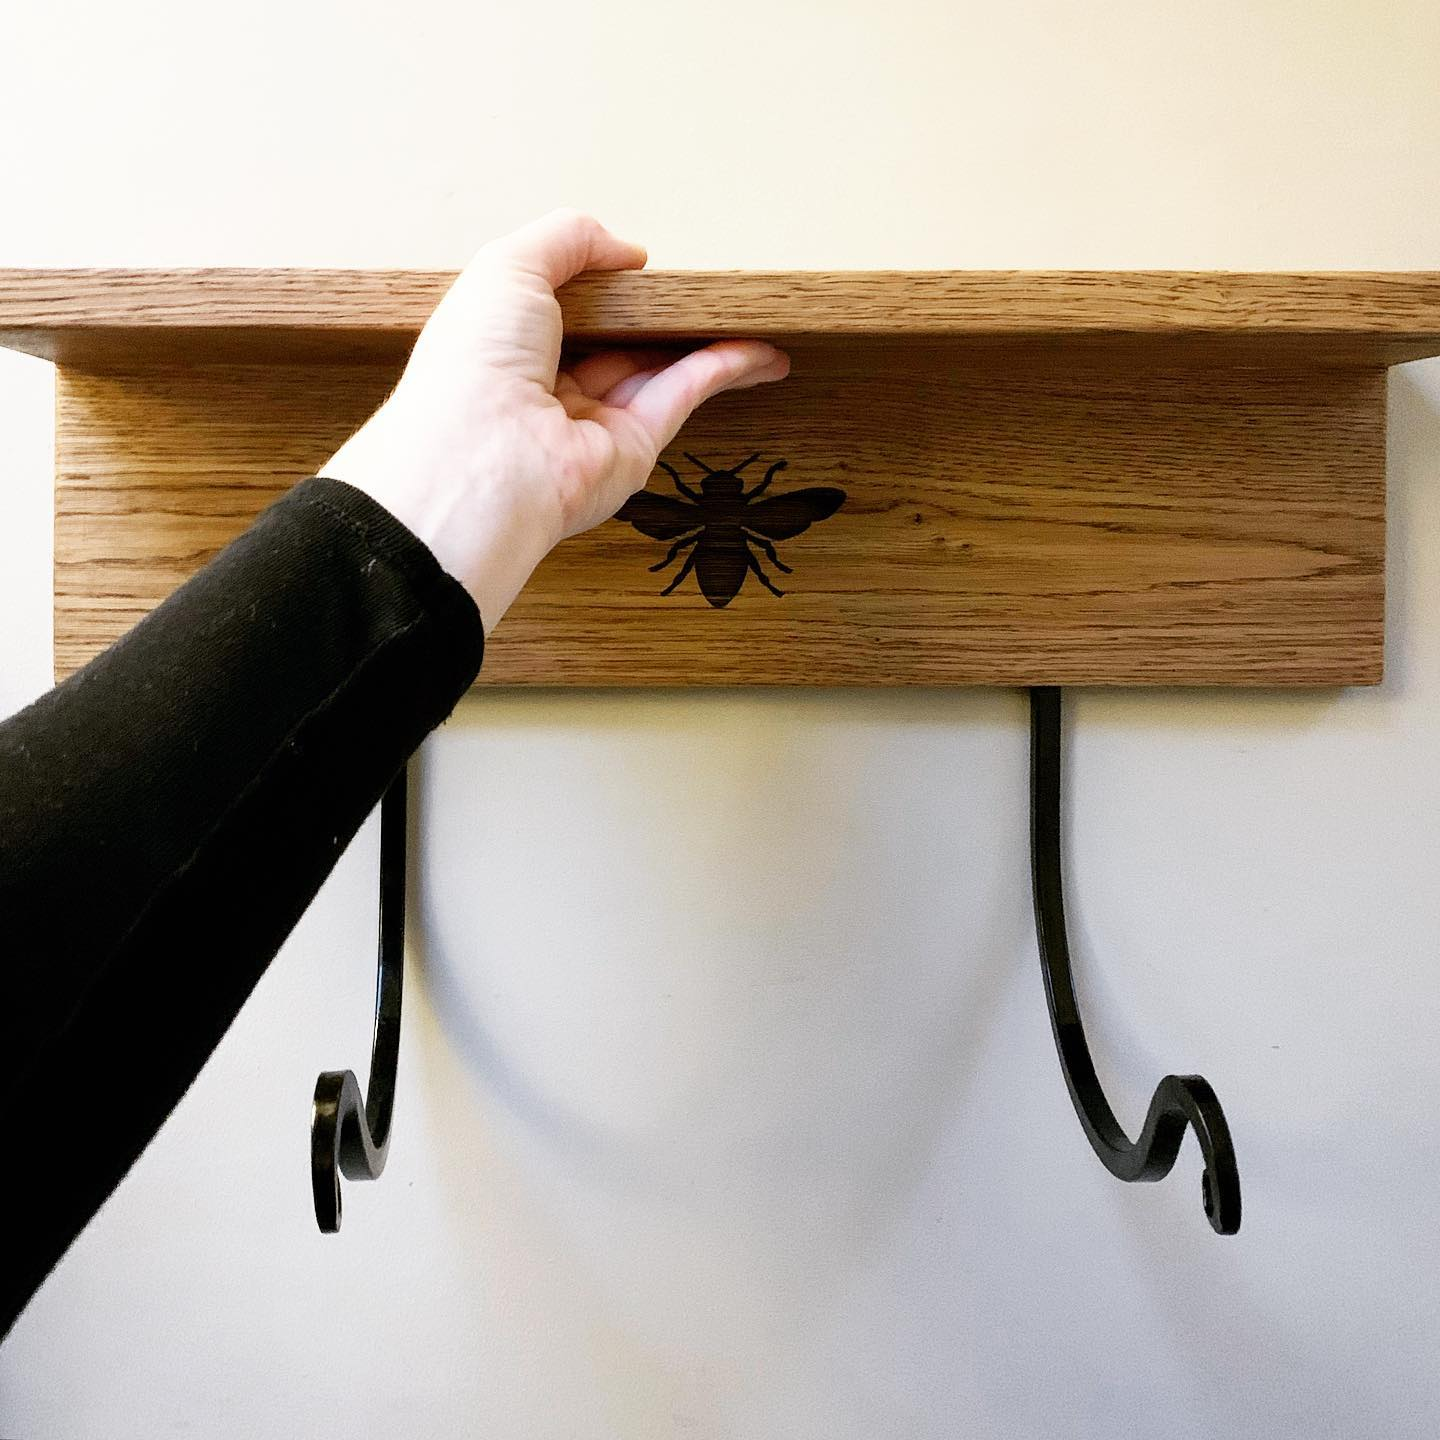 Our latest custom piece has just been delivered to its new home in Bath. Its designed to hold a yoga/gym mat and also acts as a handy shelf! ...#handmade #homewares #oak #bee #yoga #stayingfit #workingout #homedecor #bespoke